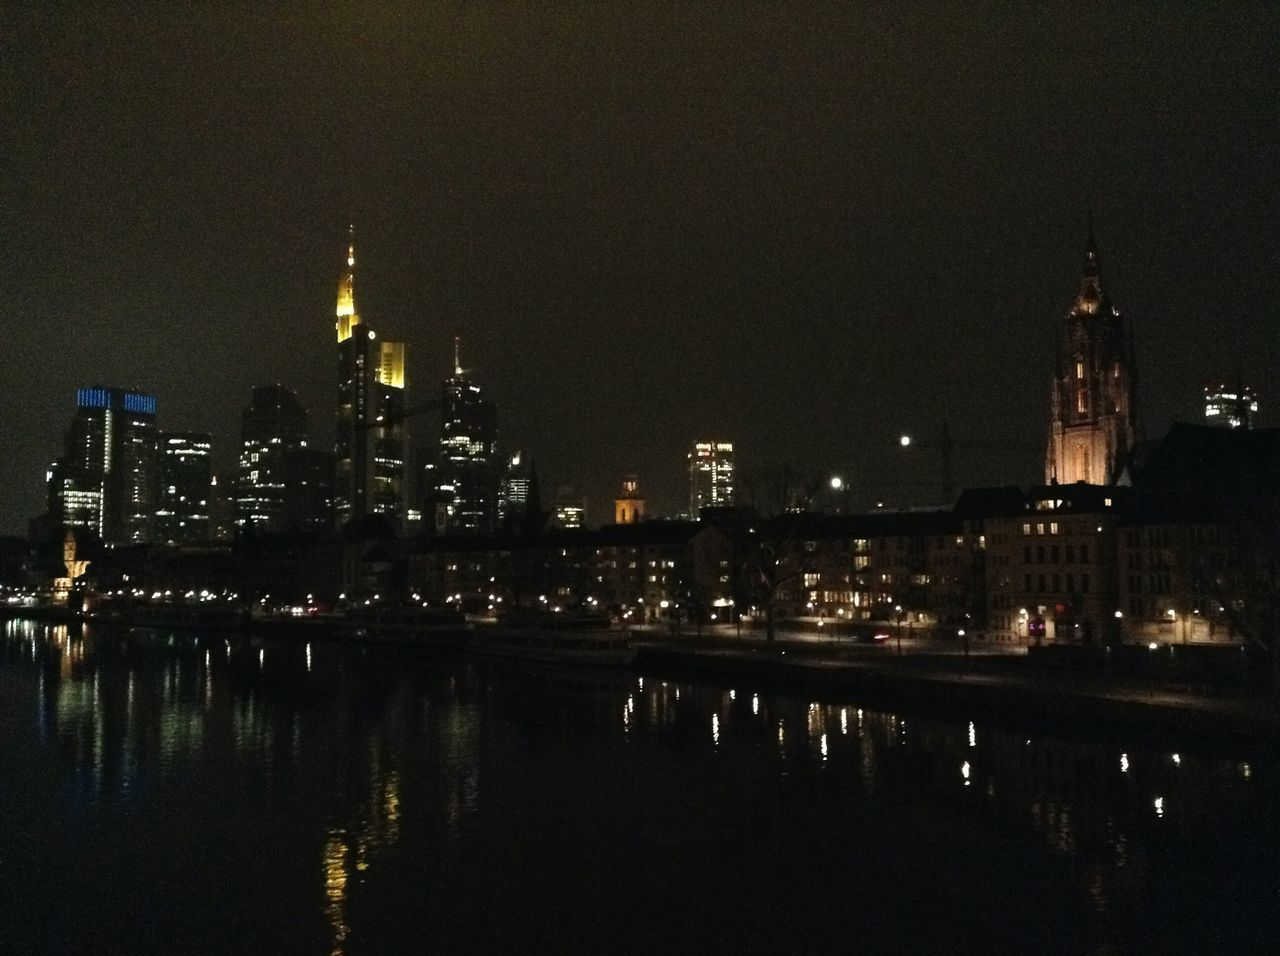 illuminated, architecture, night, building exterior, built structure, reflection, water, city, sky, travel destinations, waterfront, river, no people, skyscraper, cityscape, outdoors, clear sky, nature, urban skyline